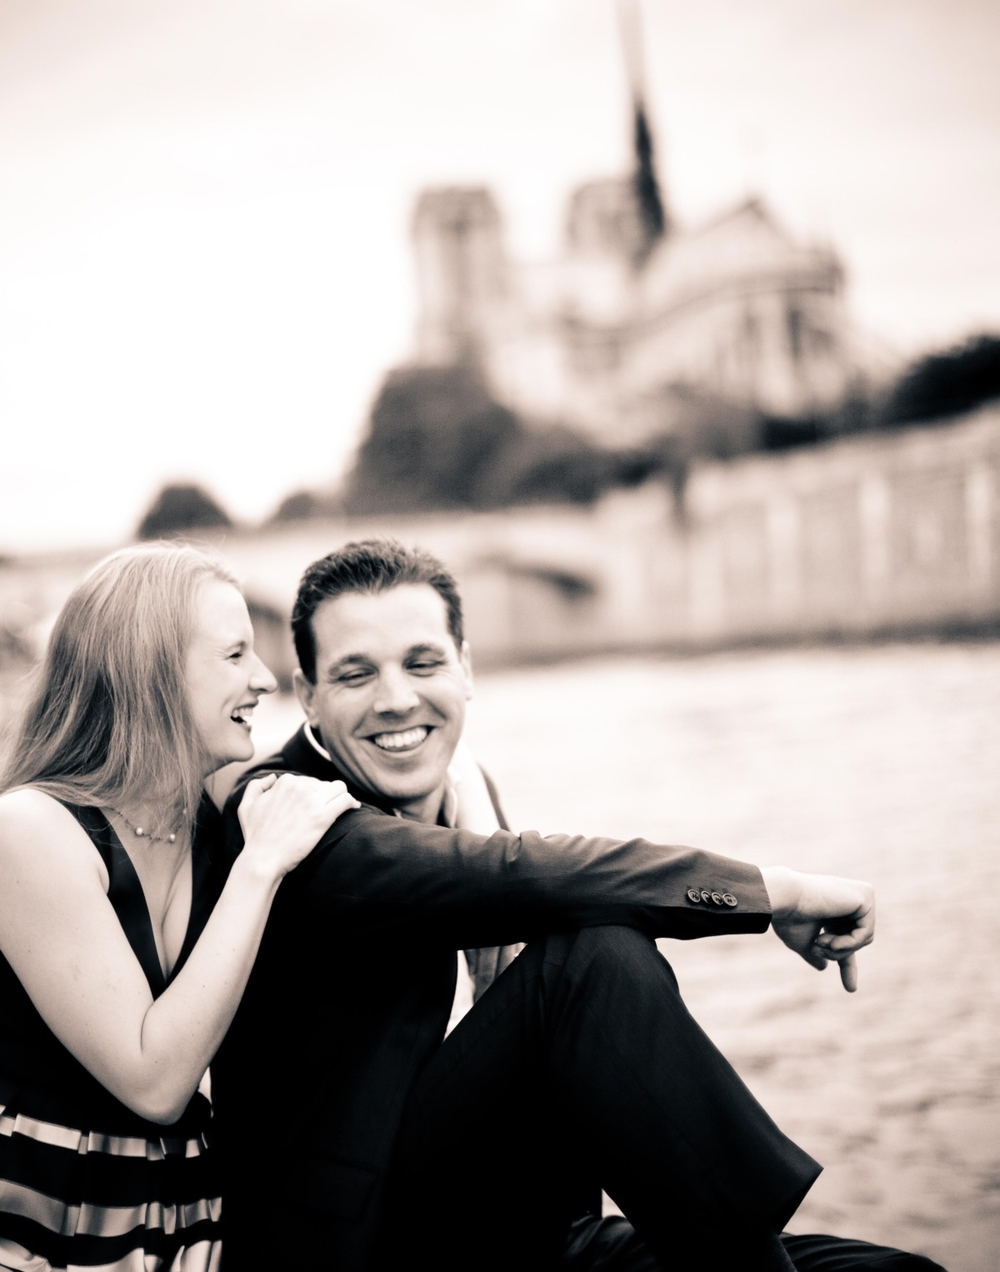 Alicia & Shane, Paris, France